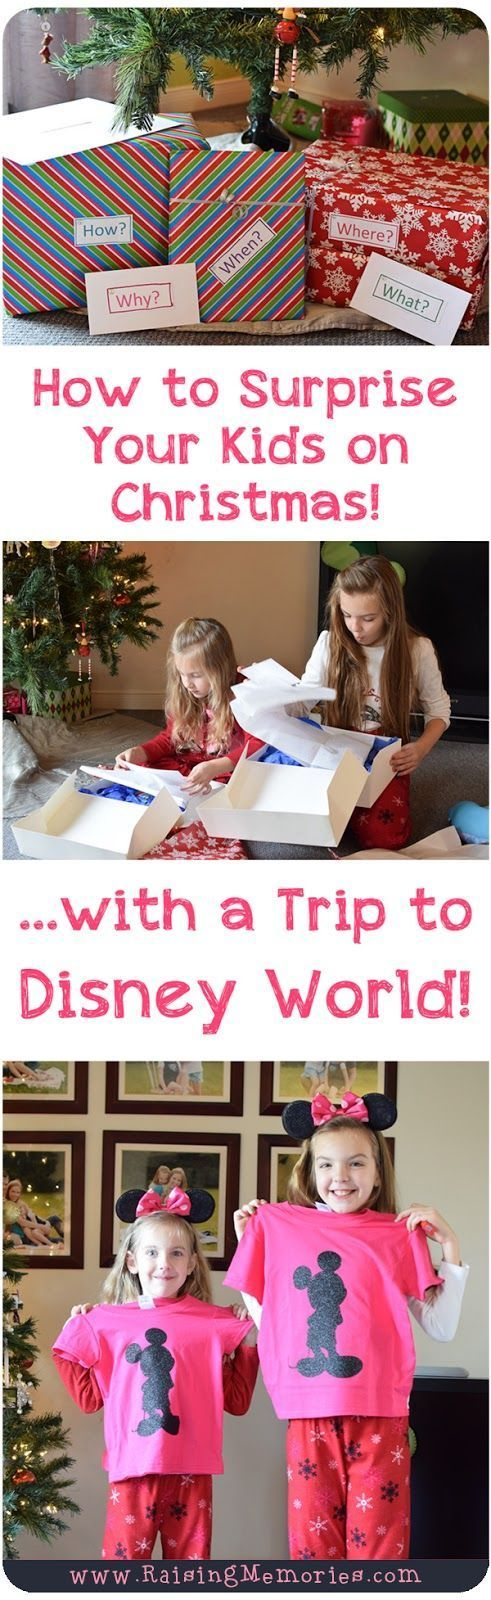 A Fun and Simple Creative way to surprise your kids with a Trip To Disney World!